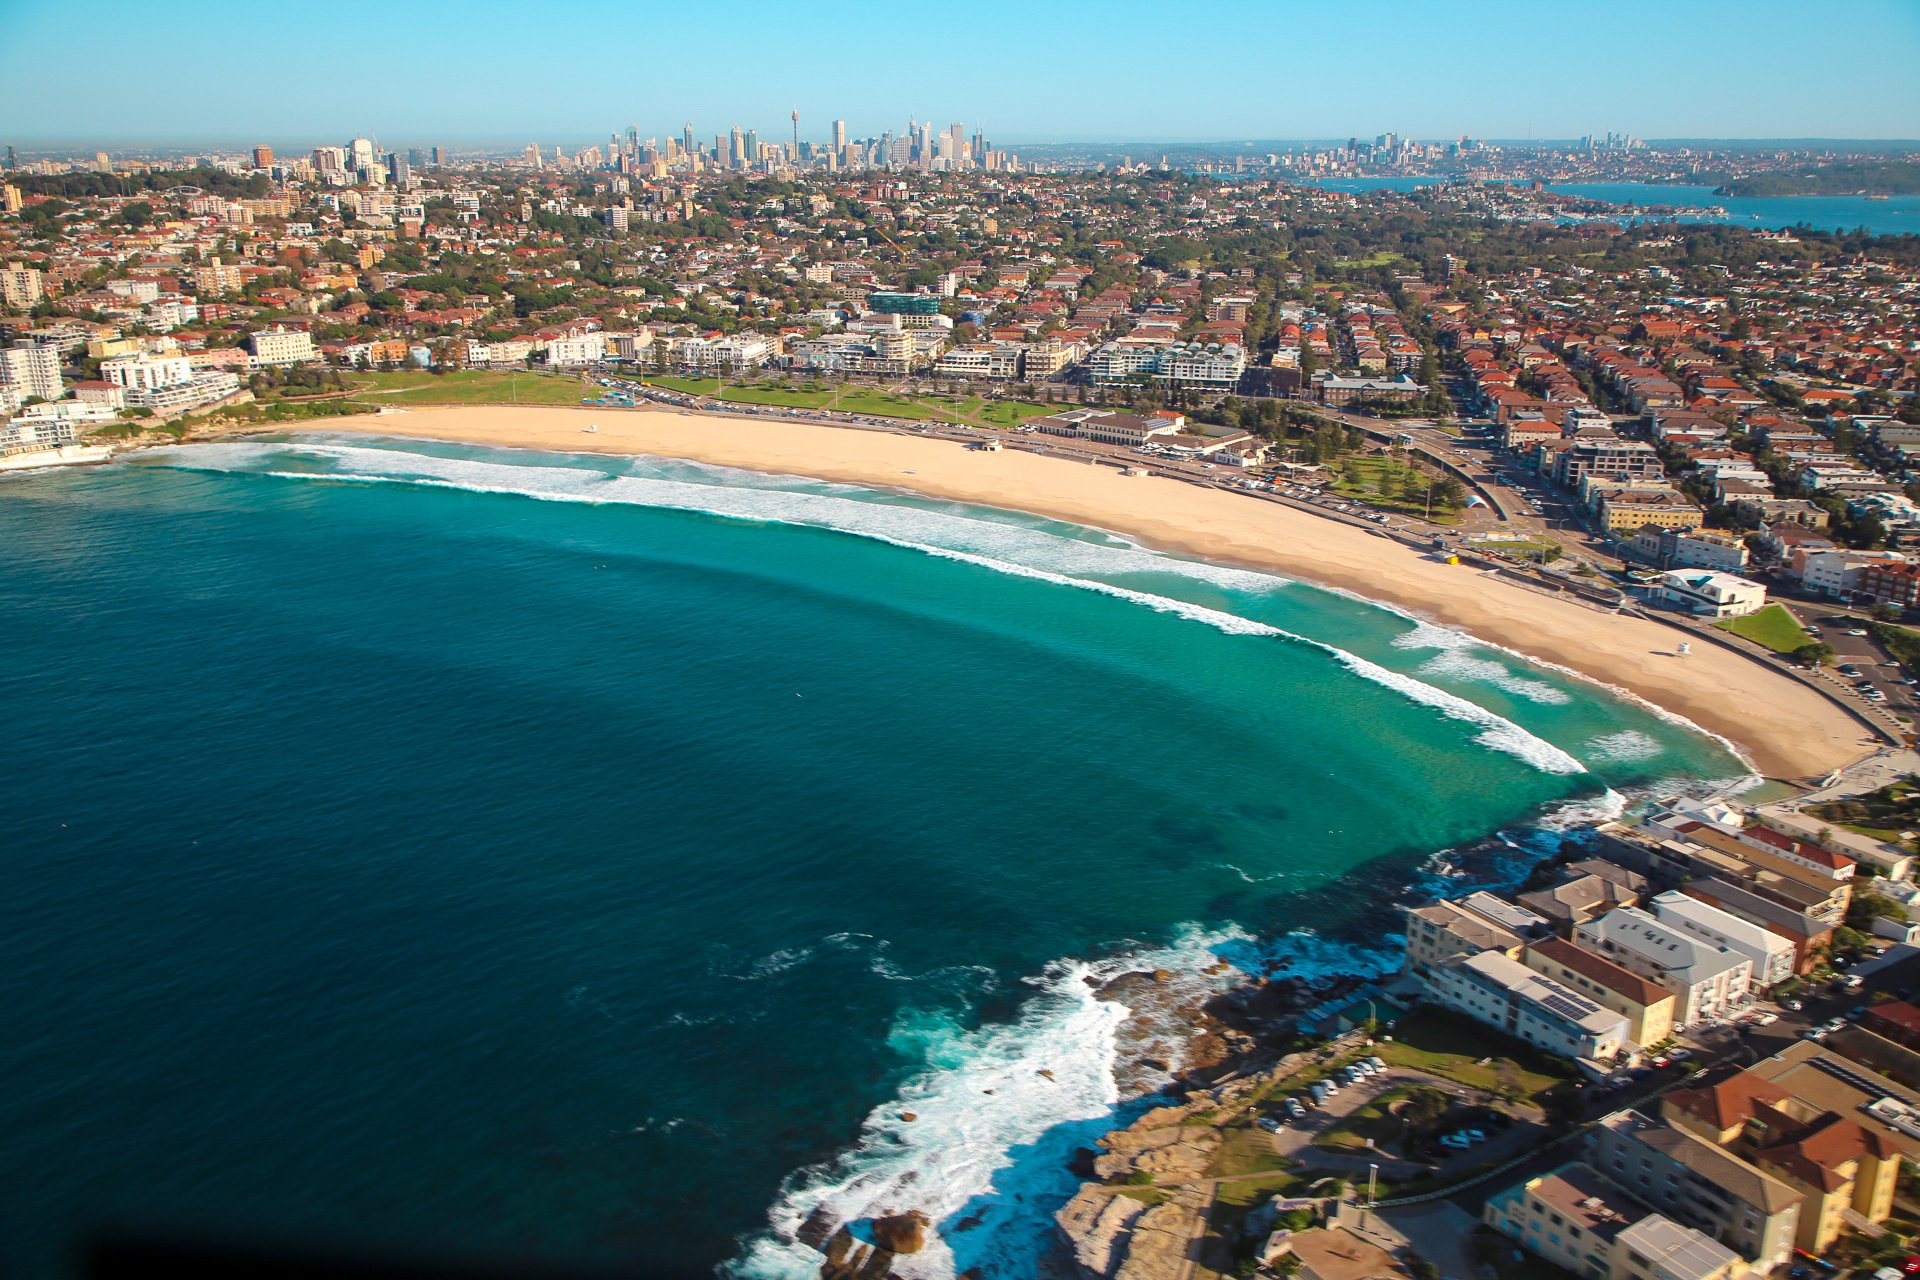 Bondi Beach looking to Sydney City